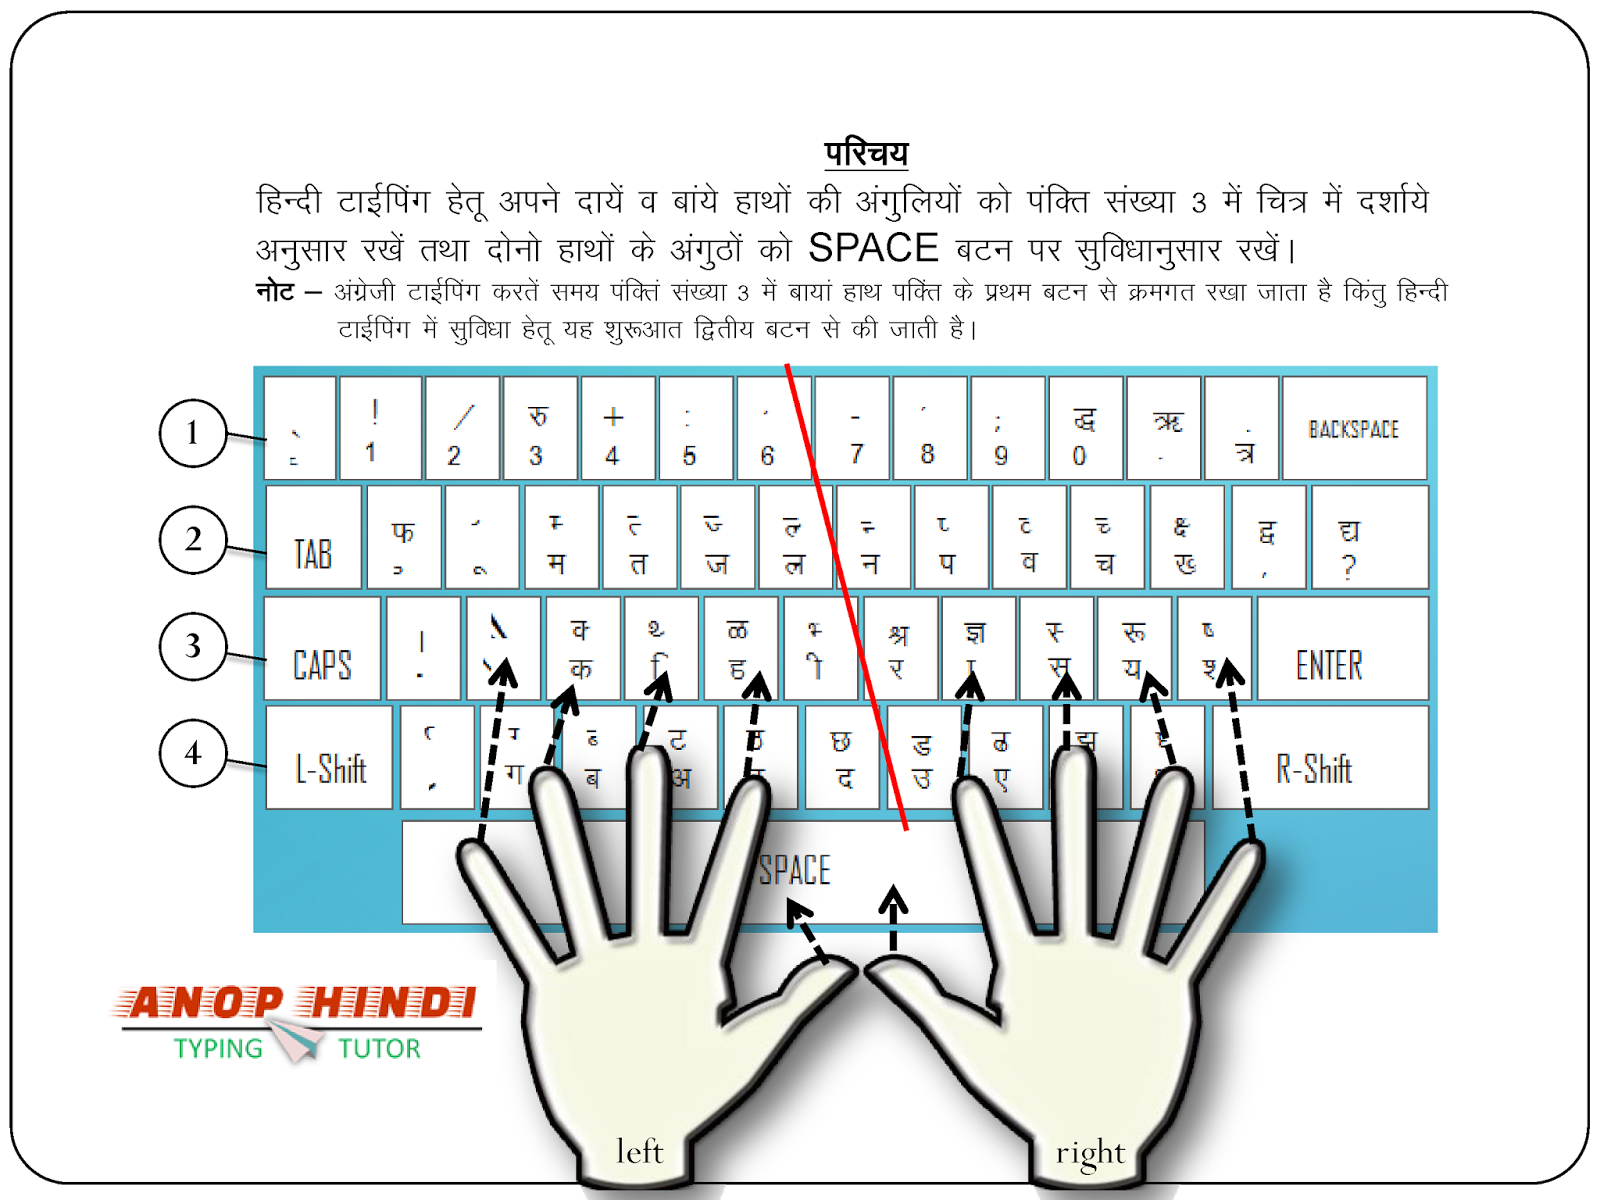 Beginner Typing Lesson 1 - LEARN TYPING